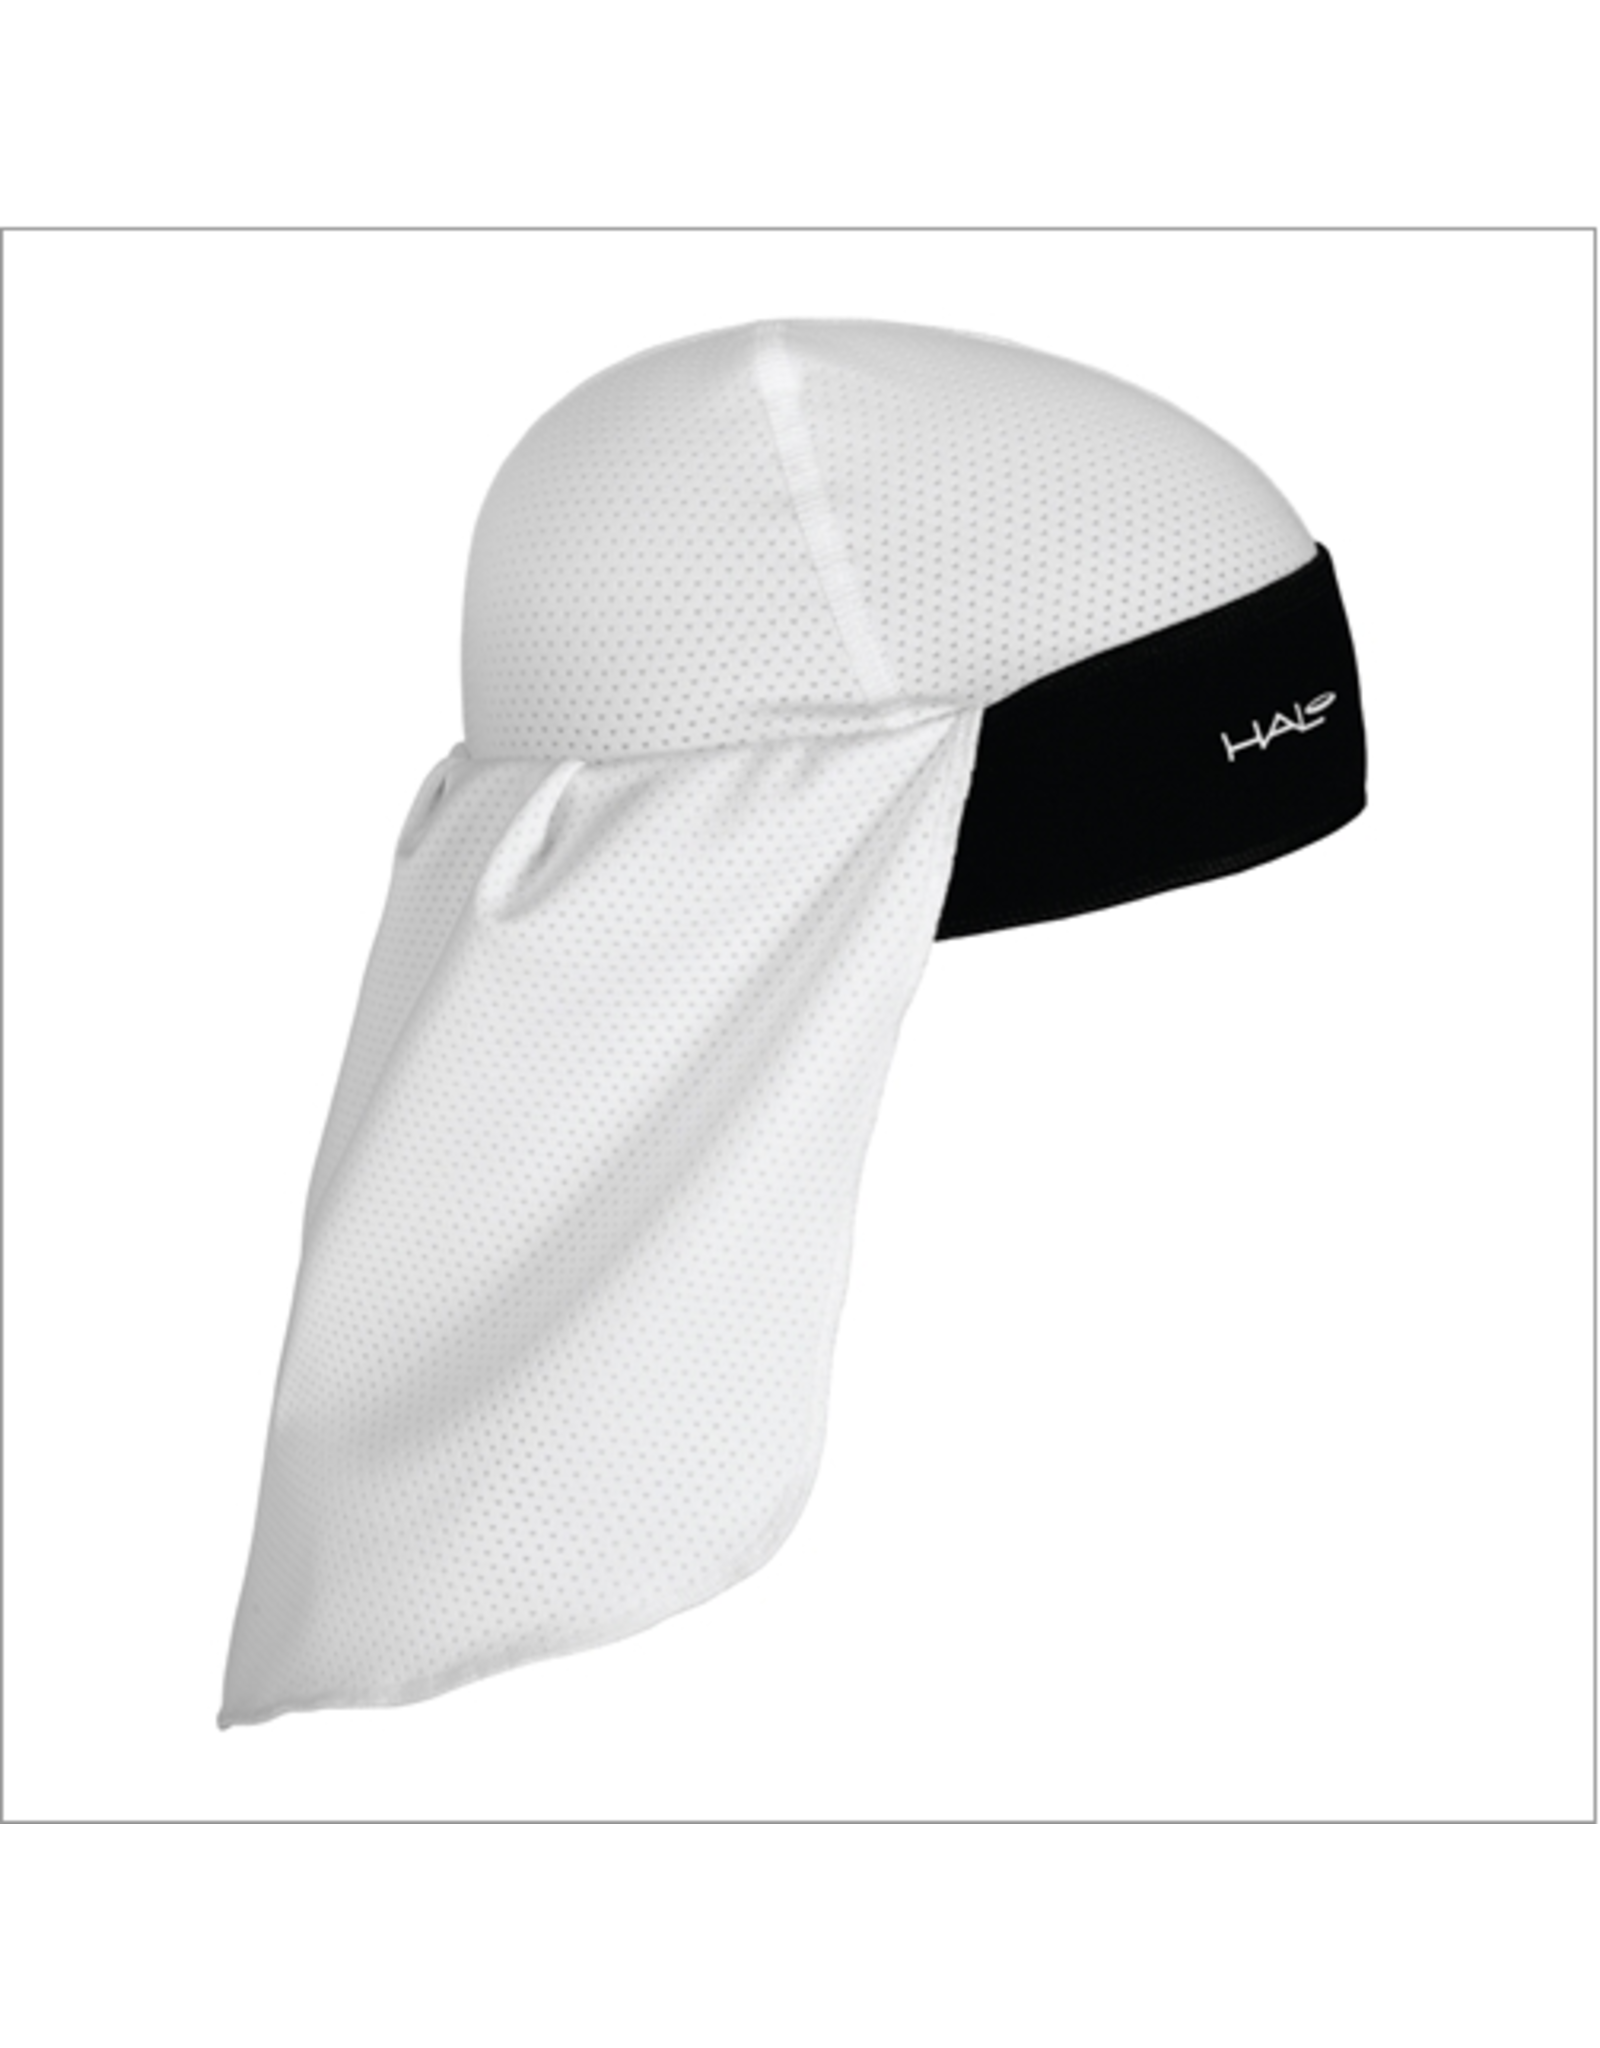 HALO Skull Cap With Tail